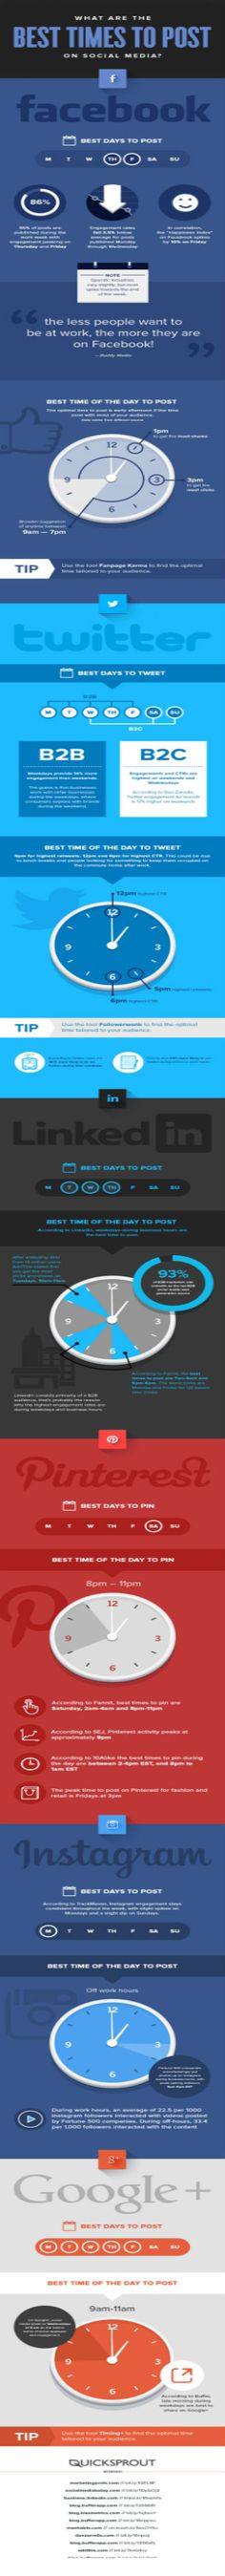 It seems that a social media manager's job is never done. It doesn't matter what time of day or day of week you're in, there's always more to do. Social me